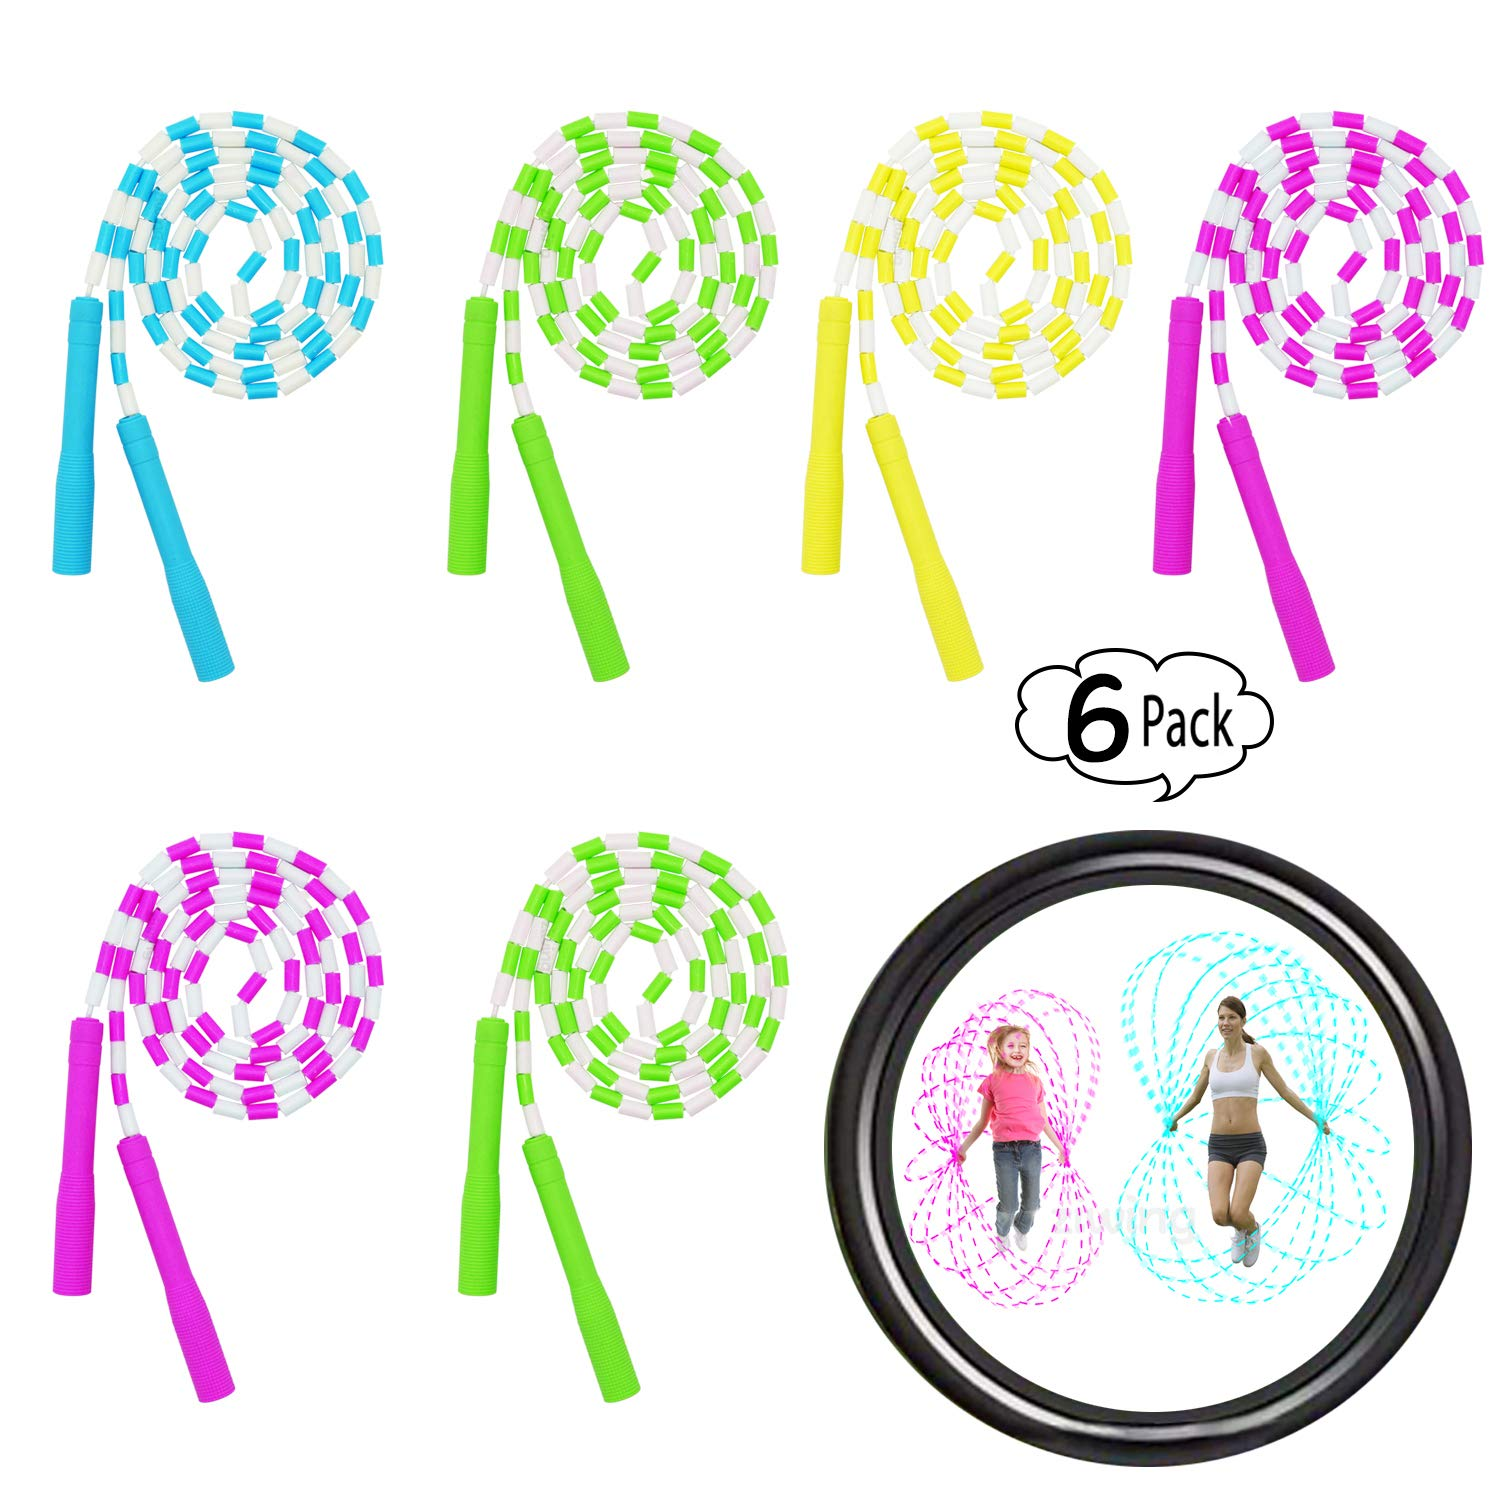 ziwing Sports Jump Ropes for Adults Men Women Kids, Adjustable Rainbow Weighted Jump Rope Workout Double Dutch with Plastic Segmentation Party Favors (6-Pack)